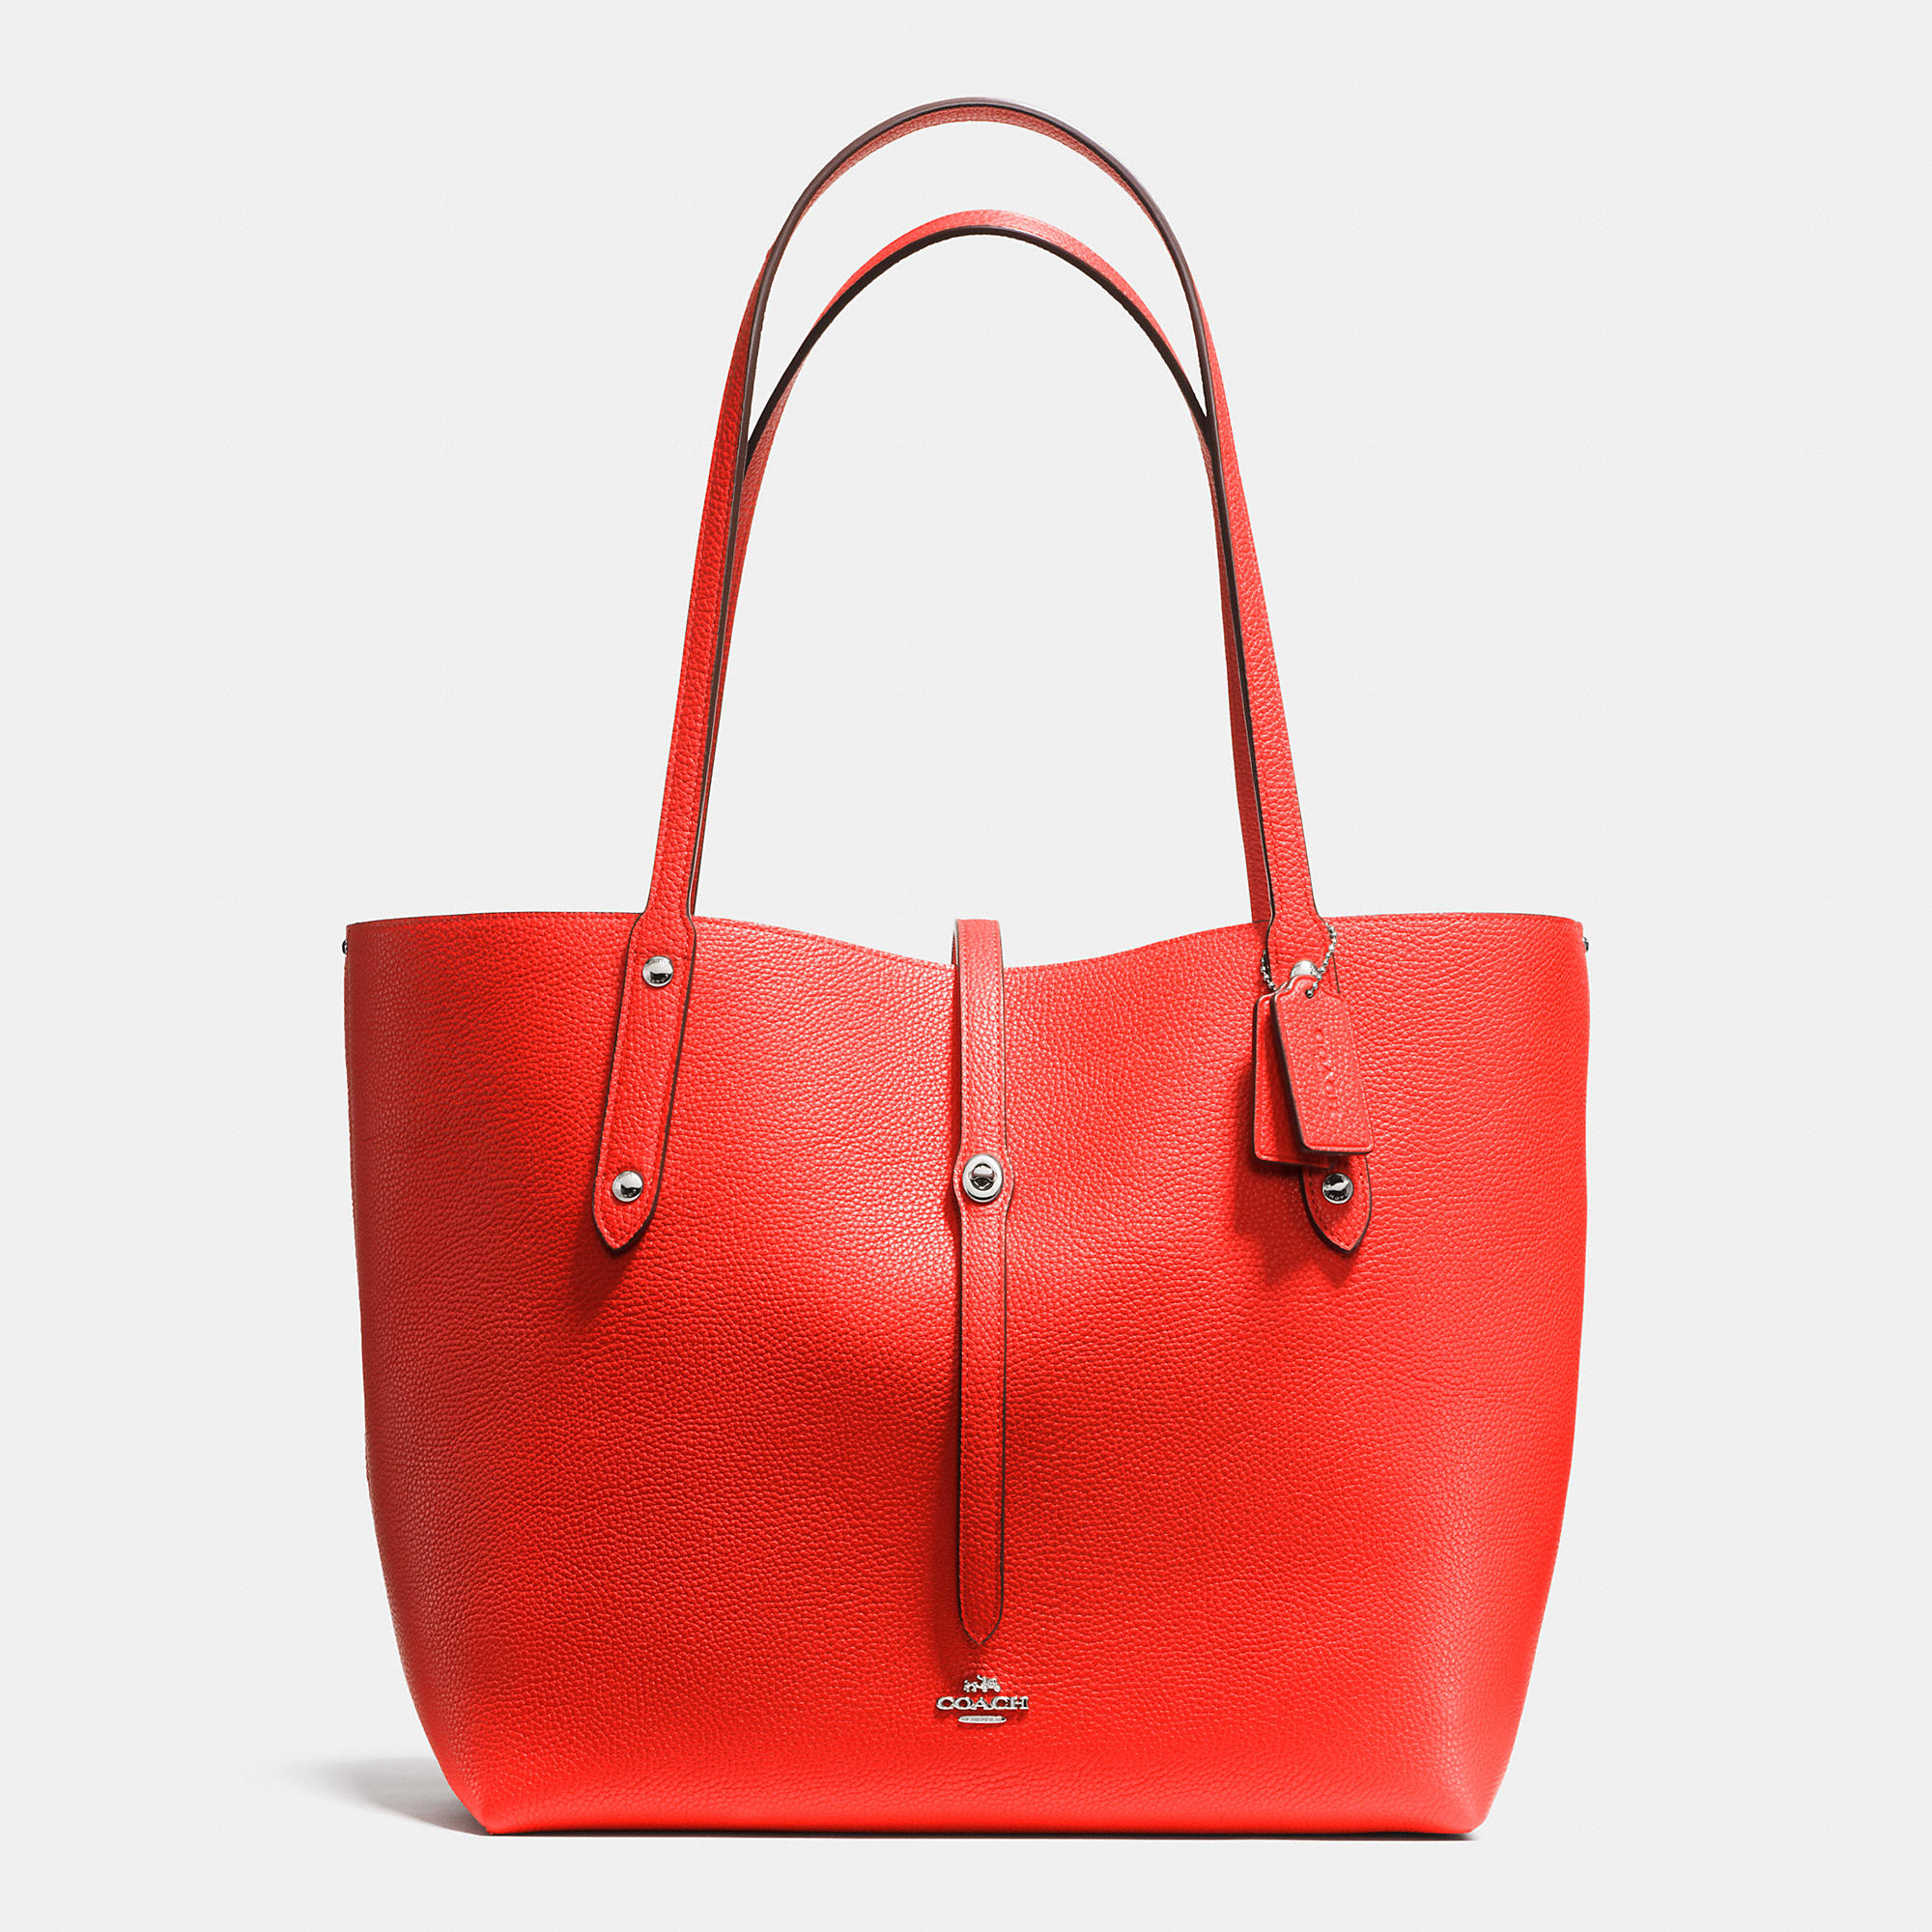 b2c0cc498b6a2 ... black true red image 3 a4d77 fea39  good lyst coach market tote in  refined pebble leather in metallic d11f7 2153b